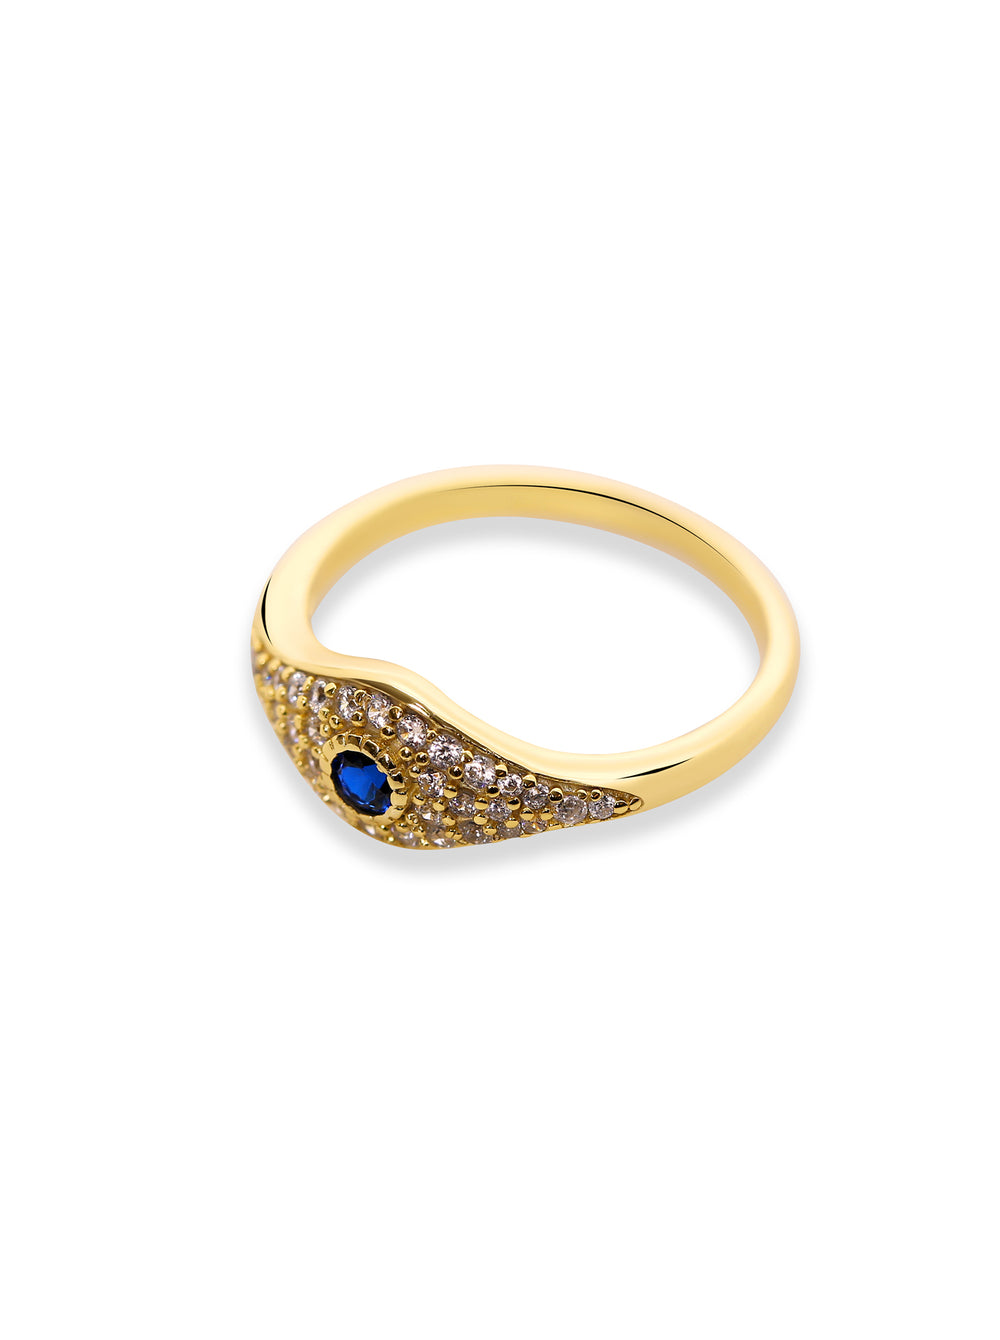 THE EVIL EYE PAVE RING